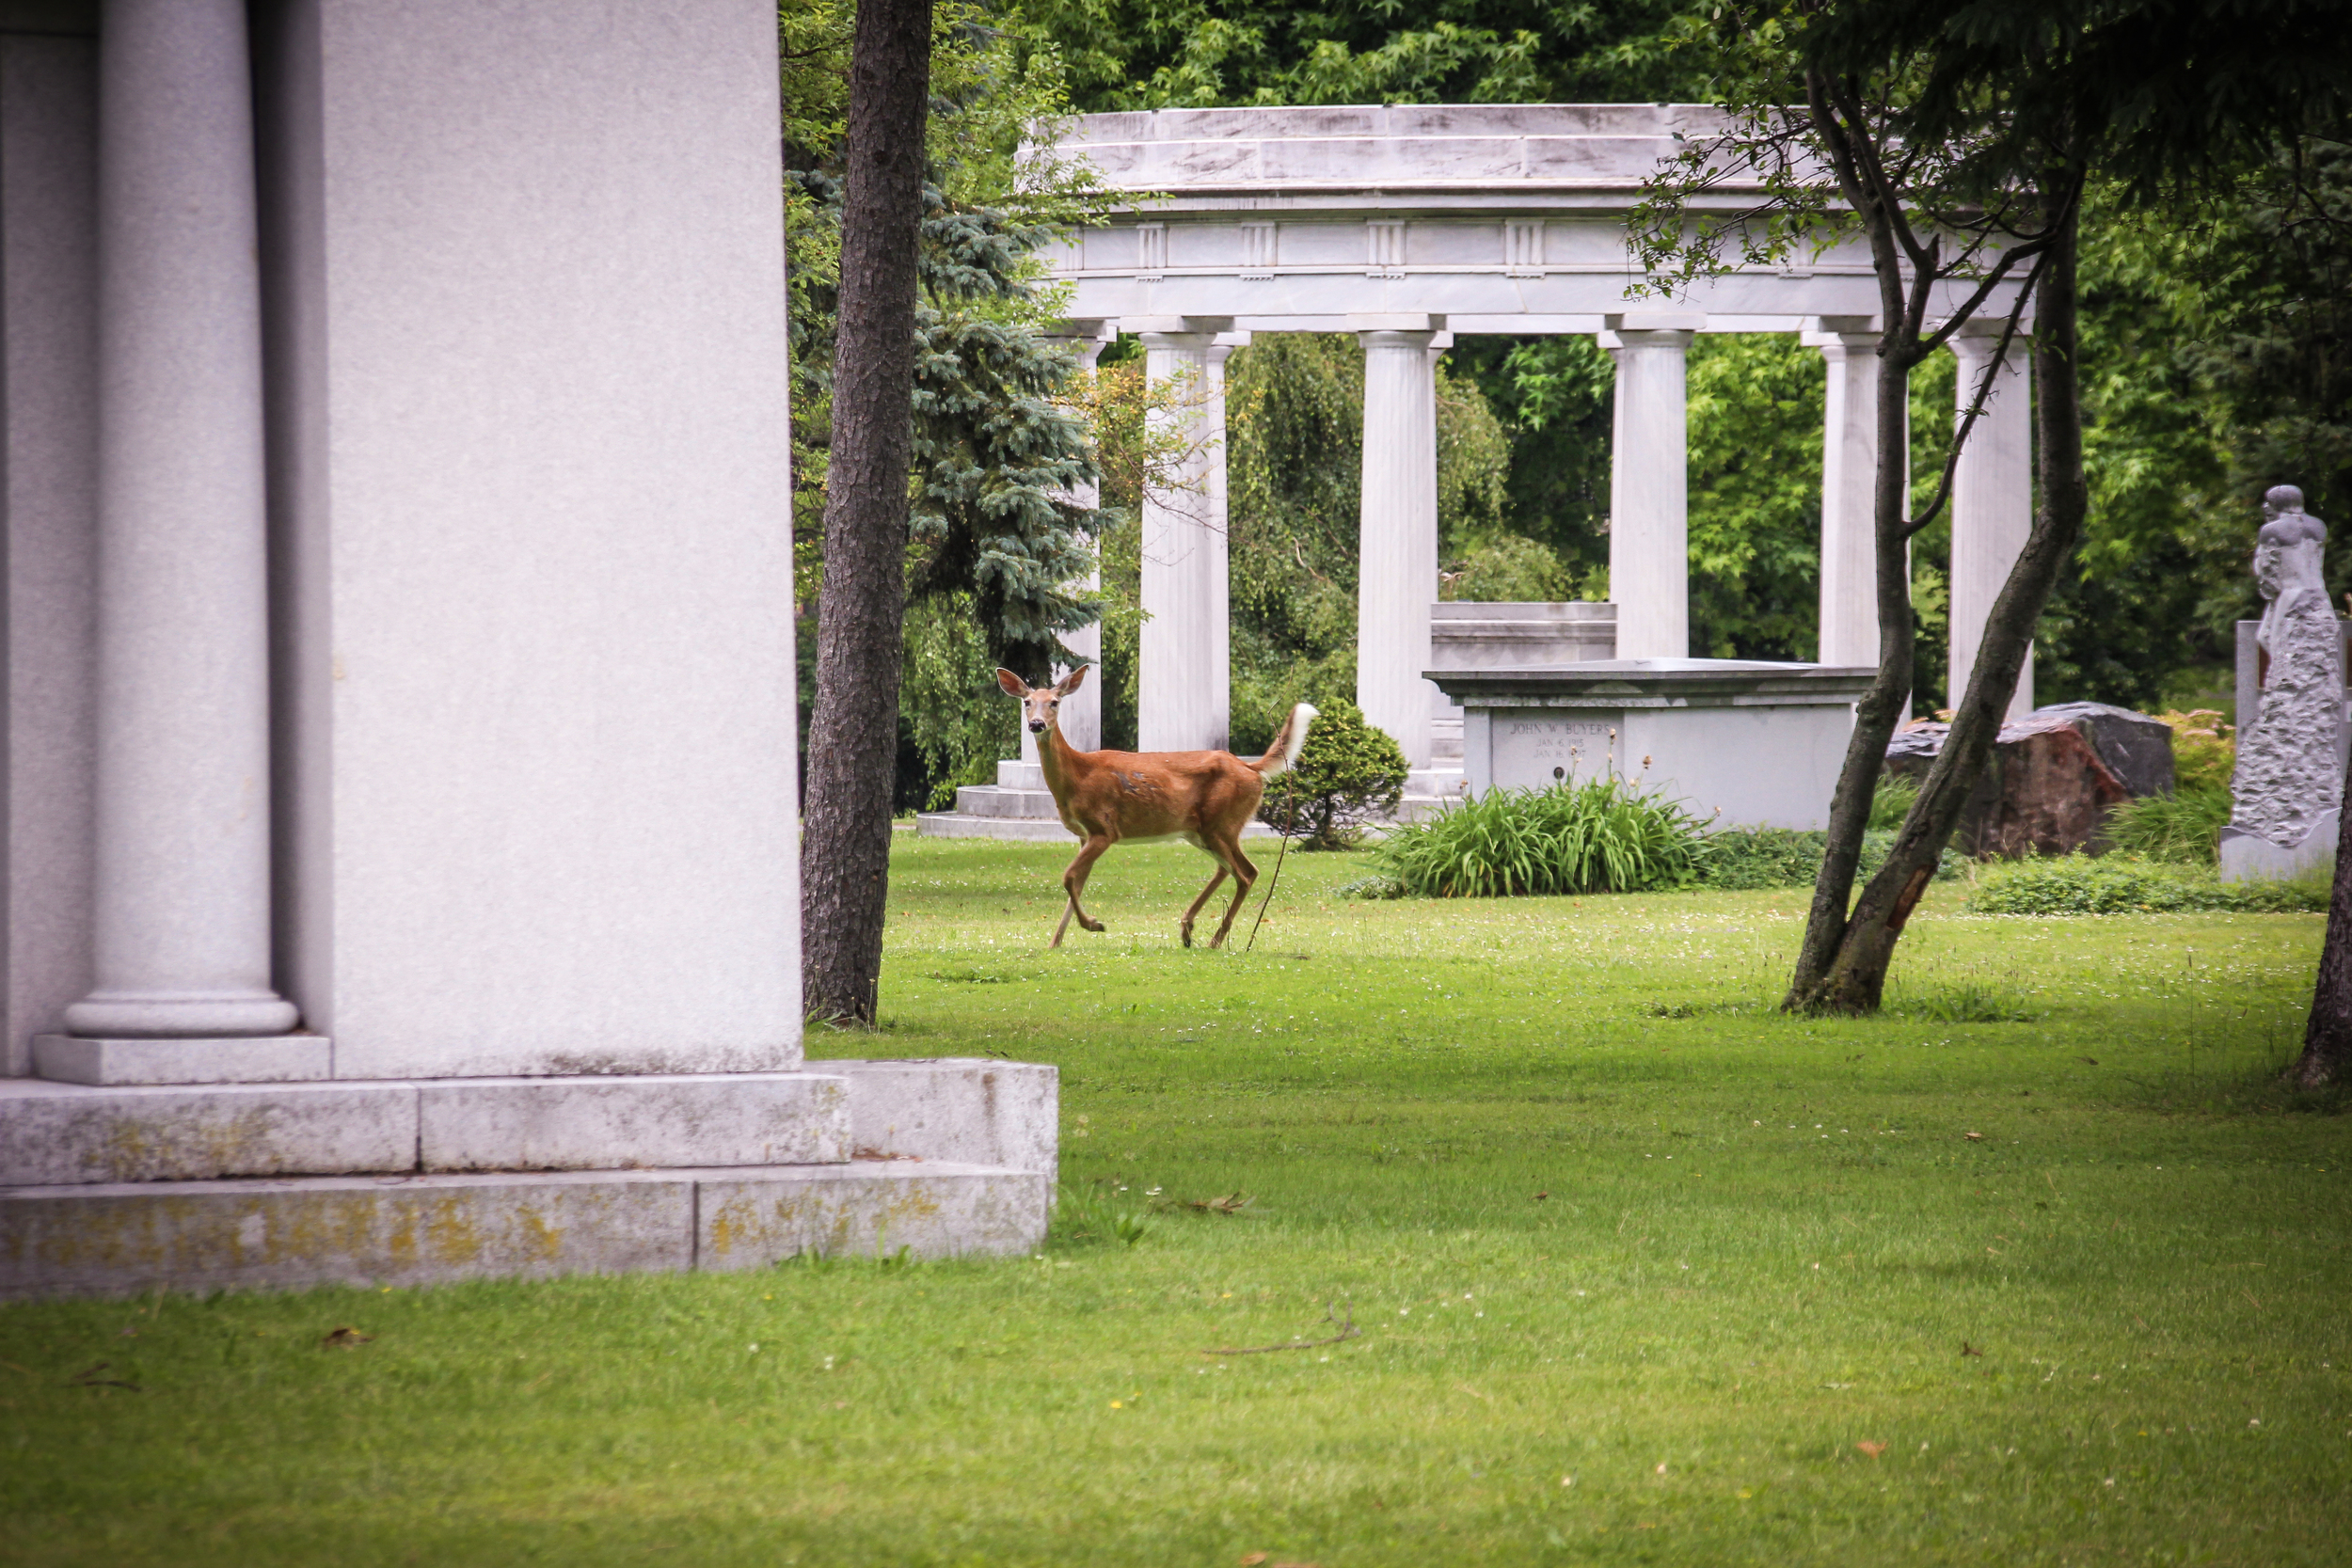 Forest Lawn Cemetery, Buffalo, NY.  The cemetery has some interesting inhabitants...